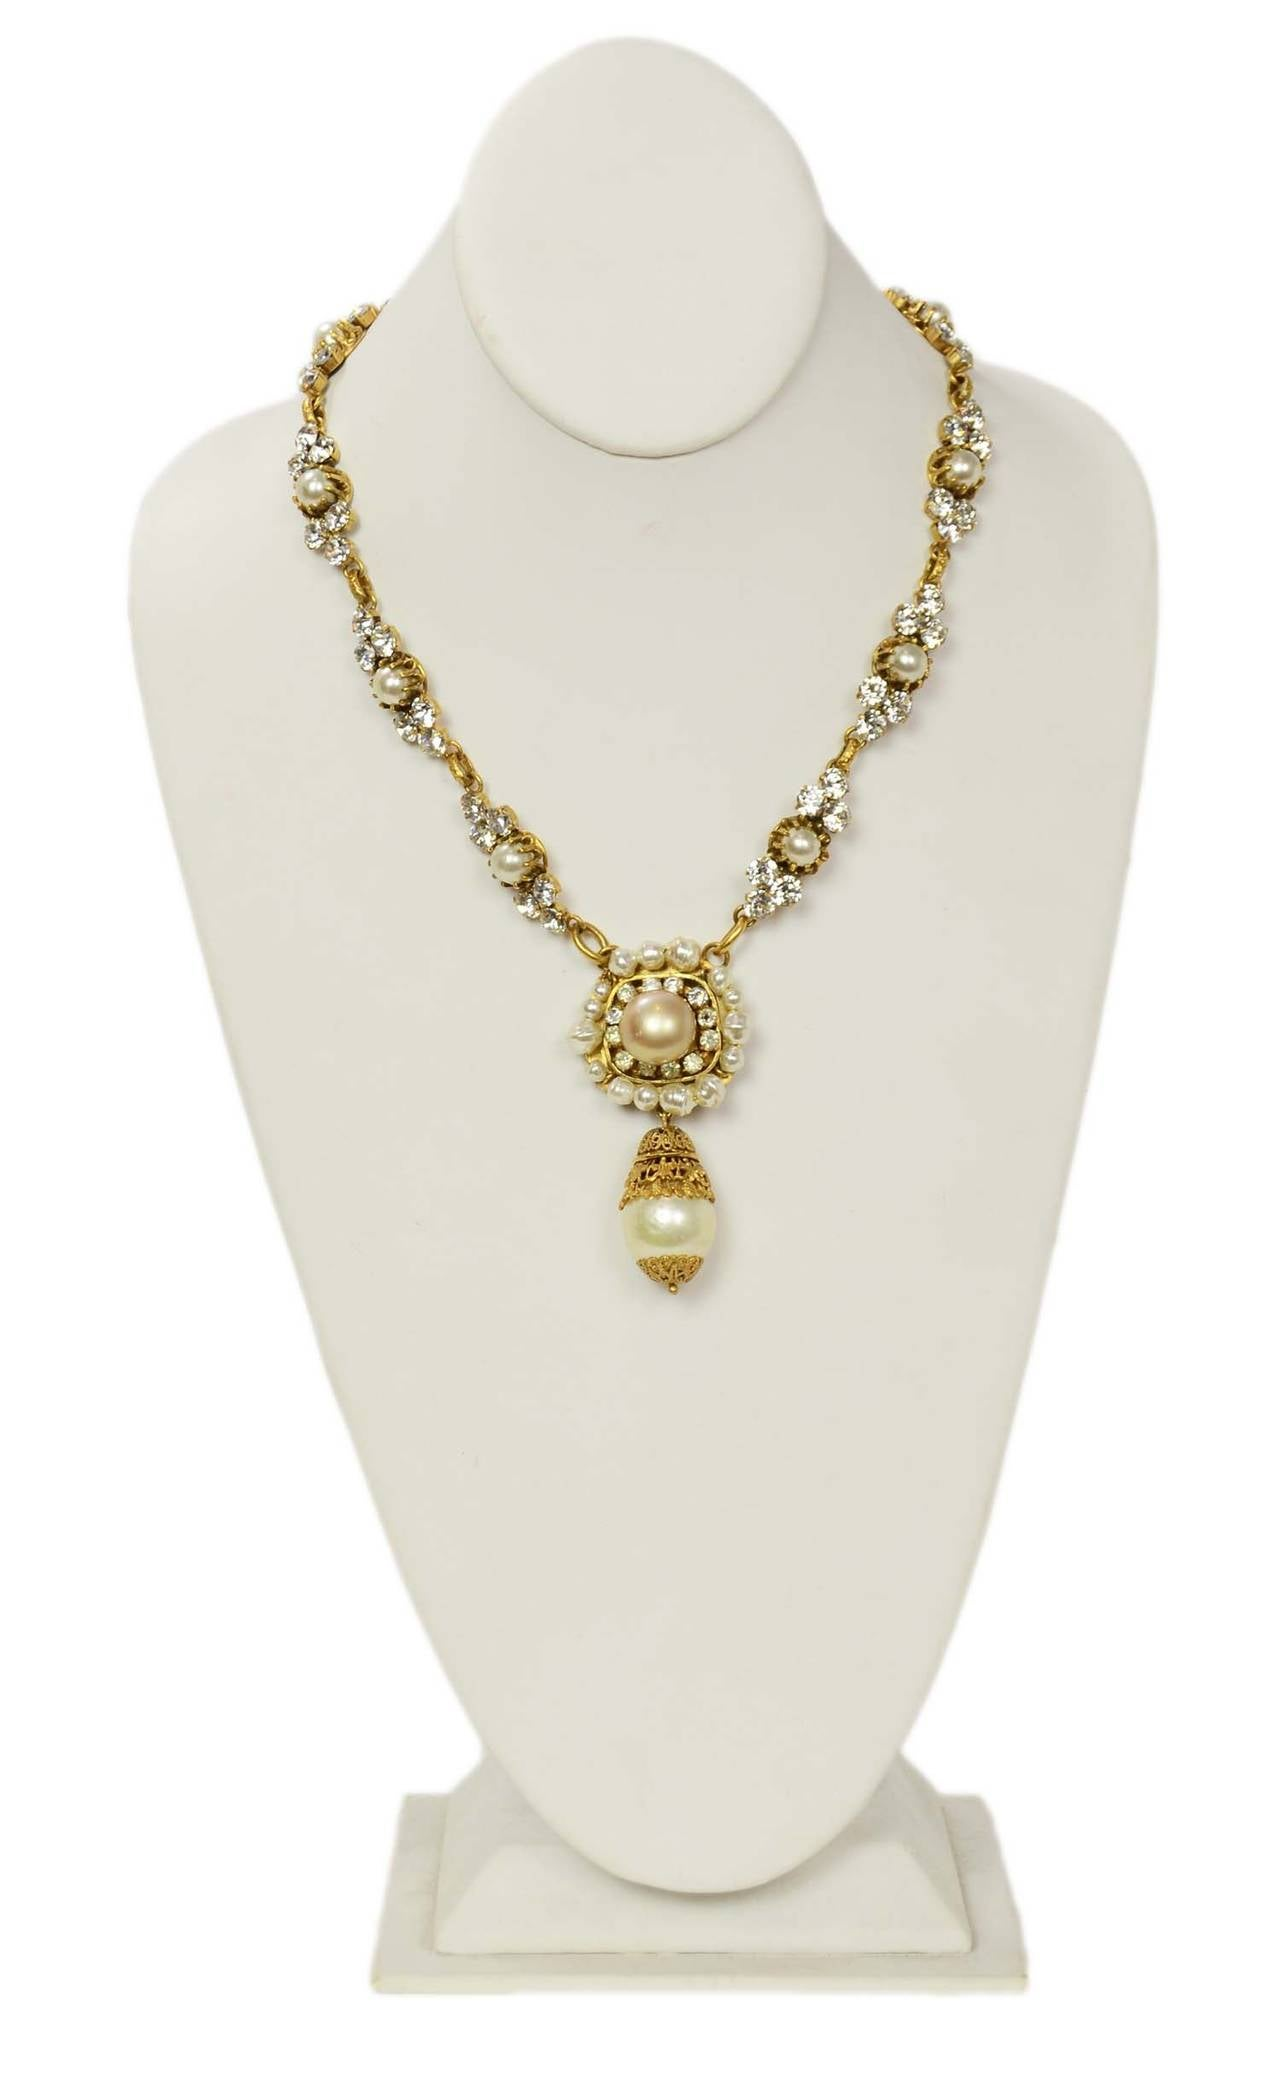 CHANEL Vintage Pearl and Strass Crystal Necklace w/Large Pearl & Drop Pendant 2